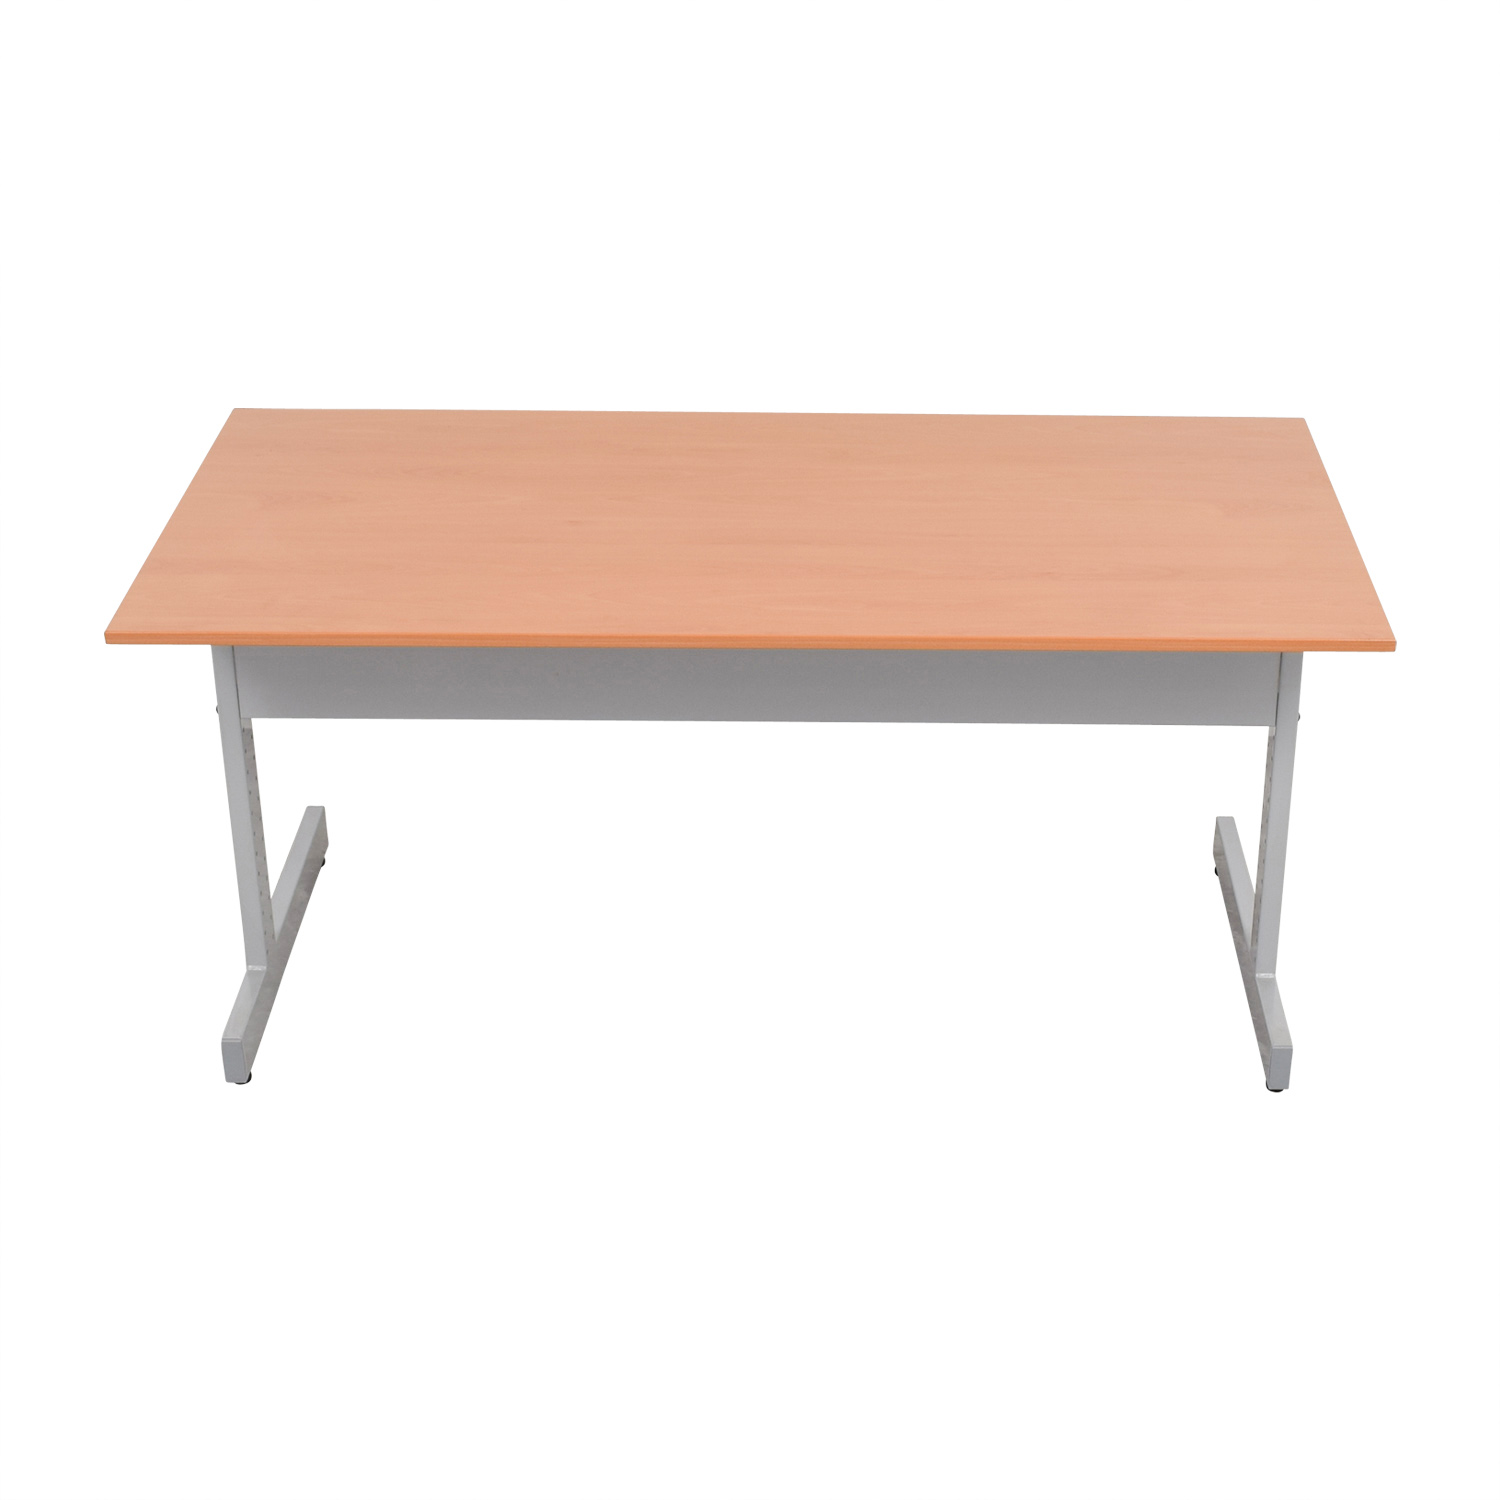 shop Metal and Wood Desk online